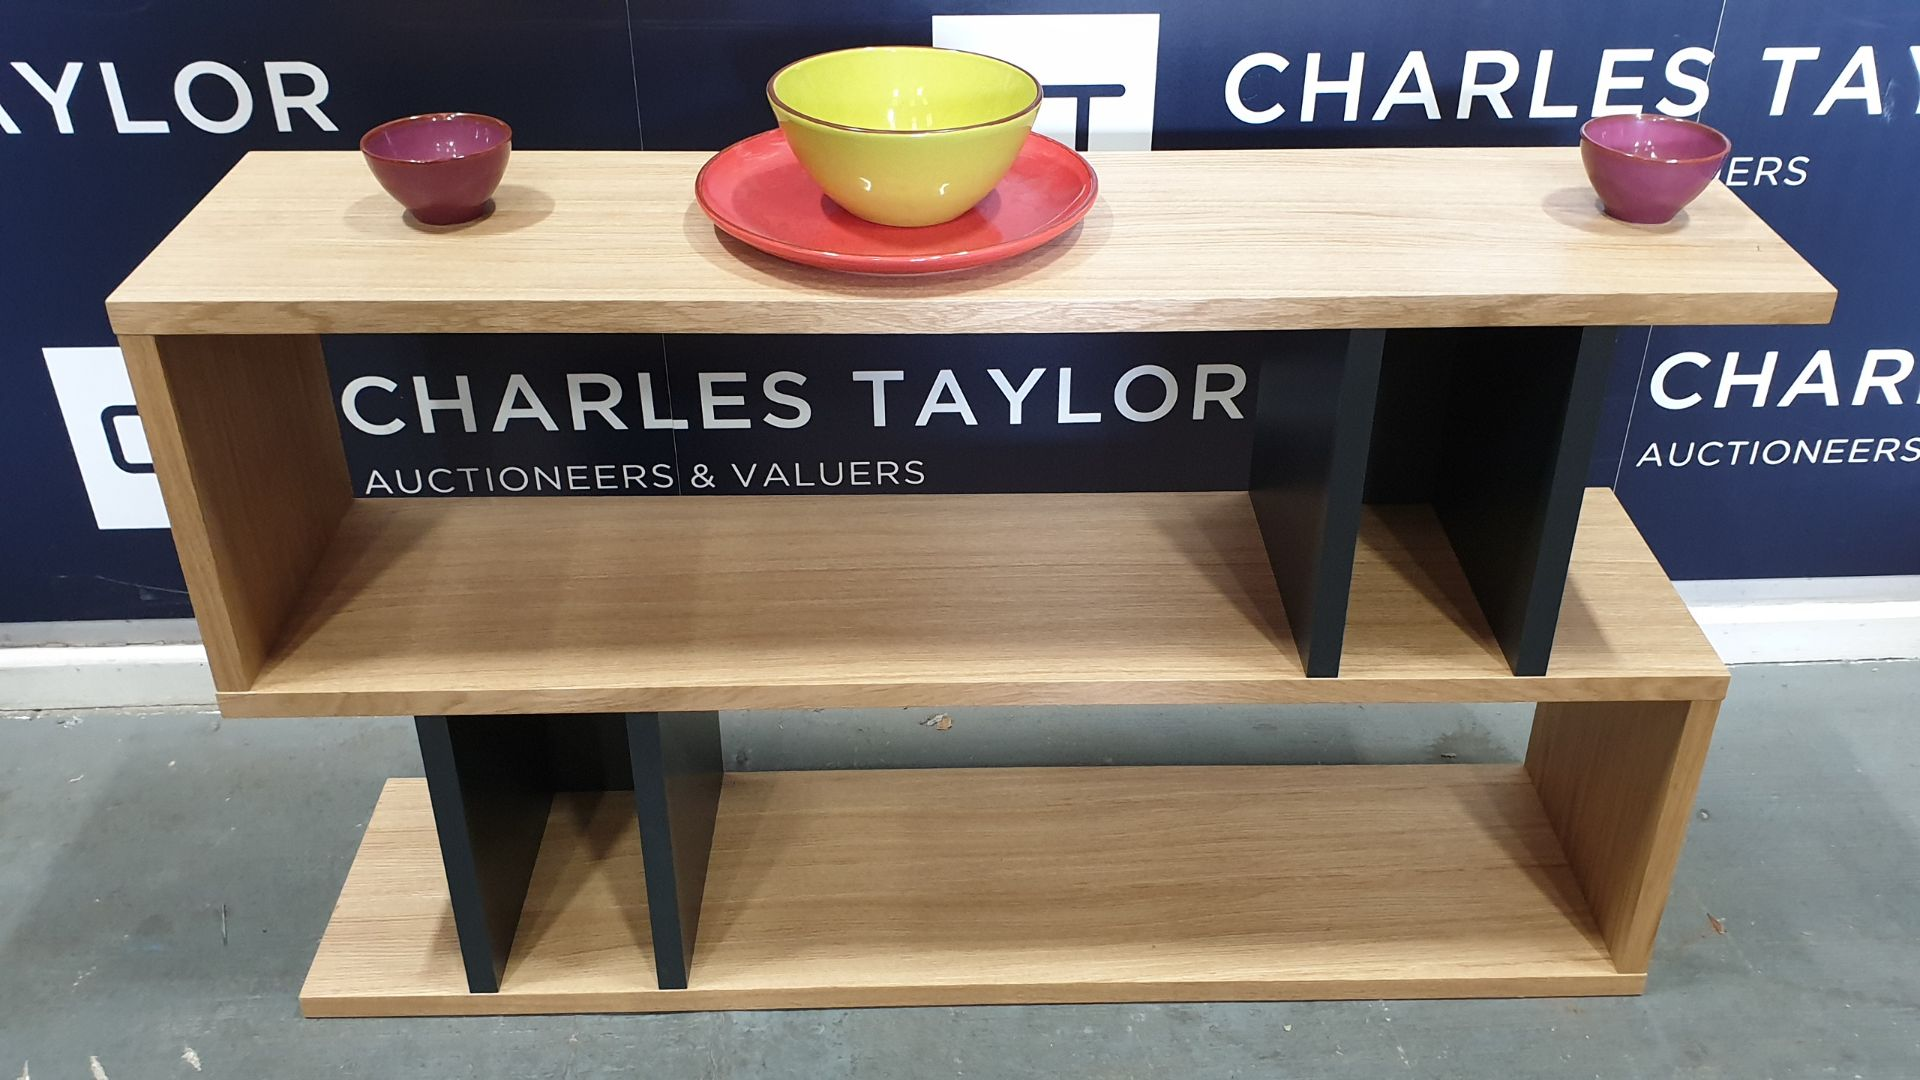 Lot 1116 - BRAND NEW BOXED CONTENT BY TERENCE CONRAN WOODEN COUNTER BALANCE, LOW SHELVING UNIT IN OAK/